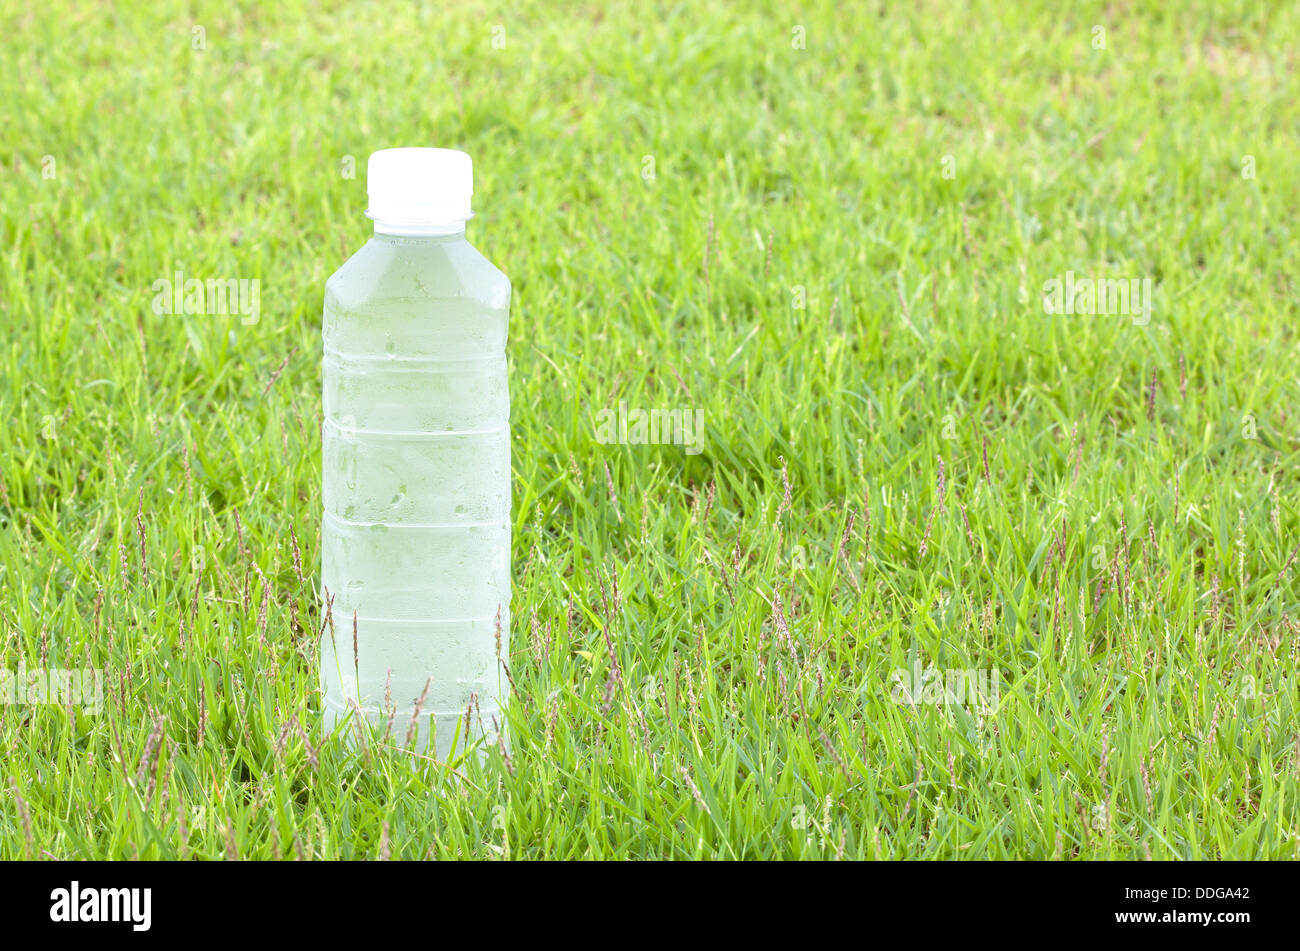 Plastic water bottles cool, thirst-quenching. Background of grass - Stock Image